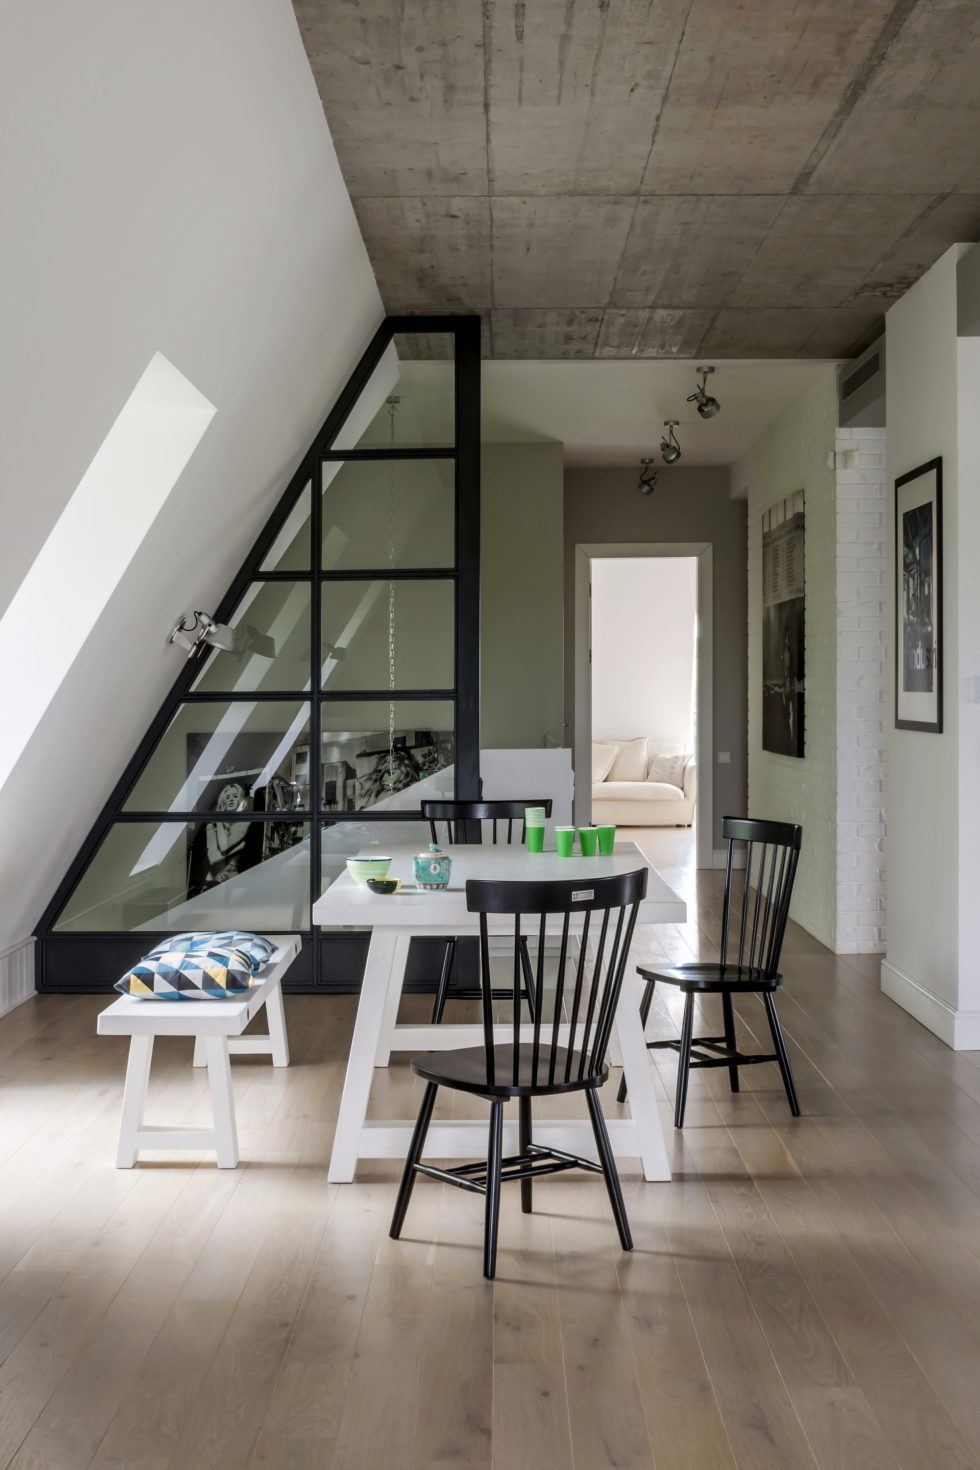 Modern Palace The Private House From Mood Works Studio In Warsaw Poland 18